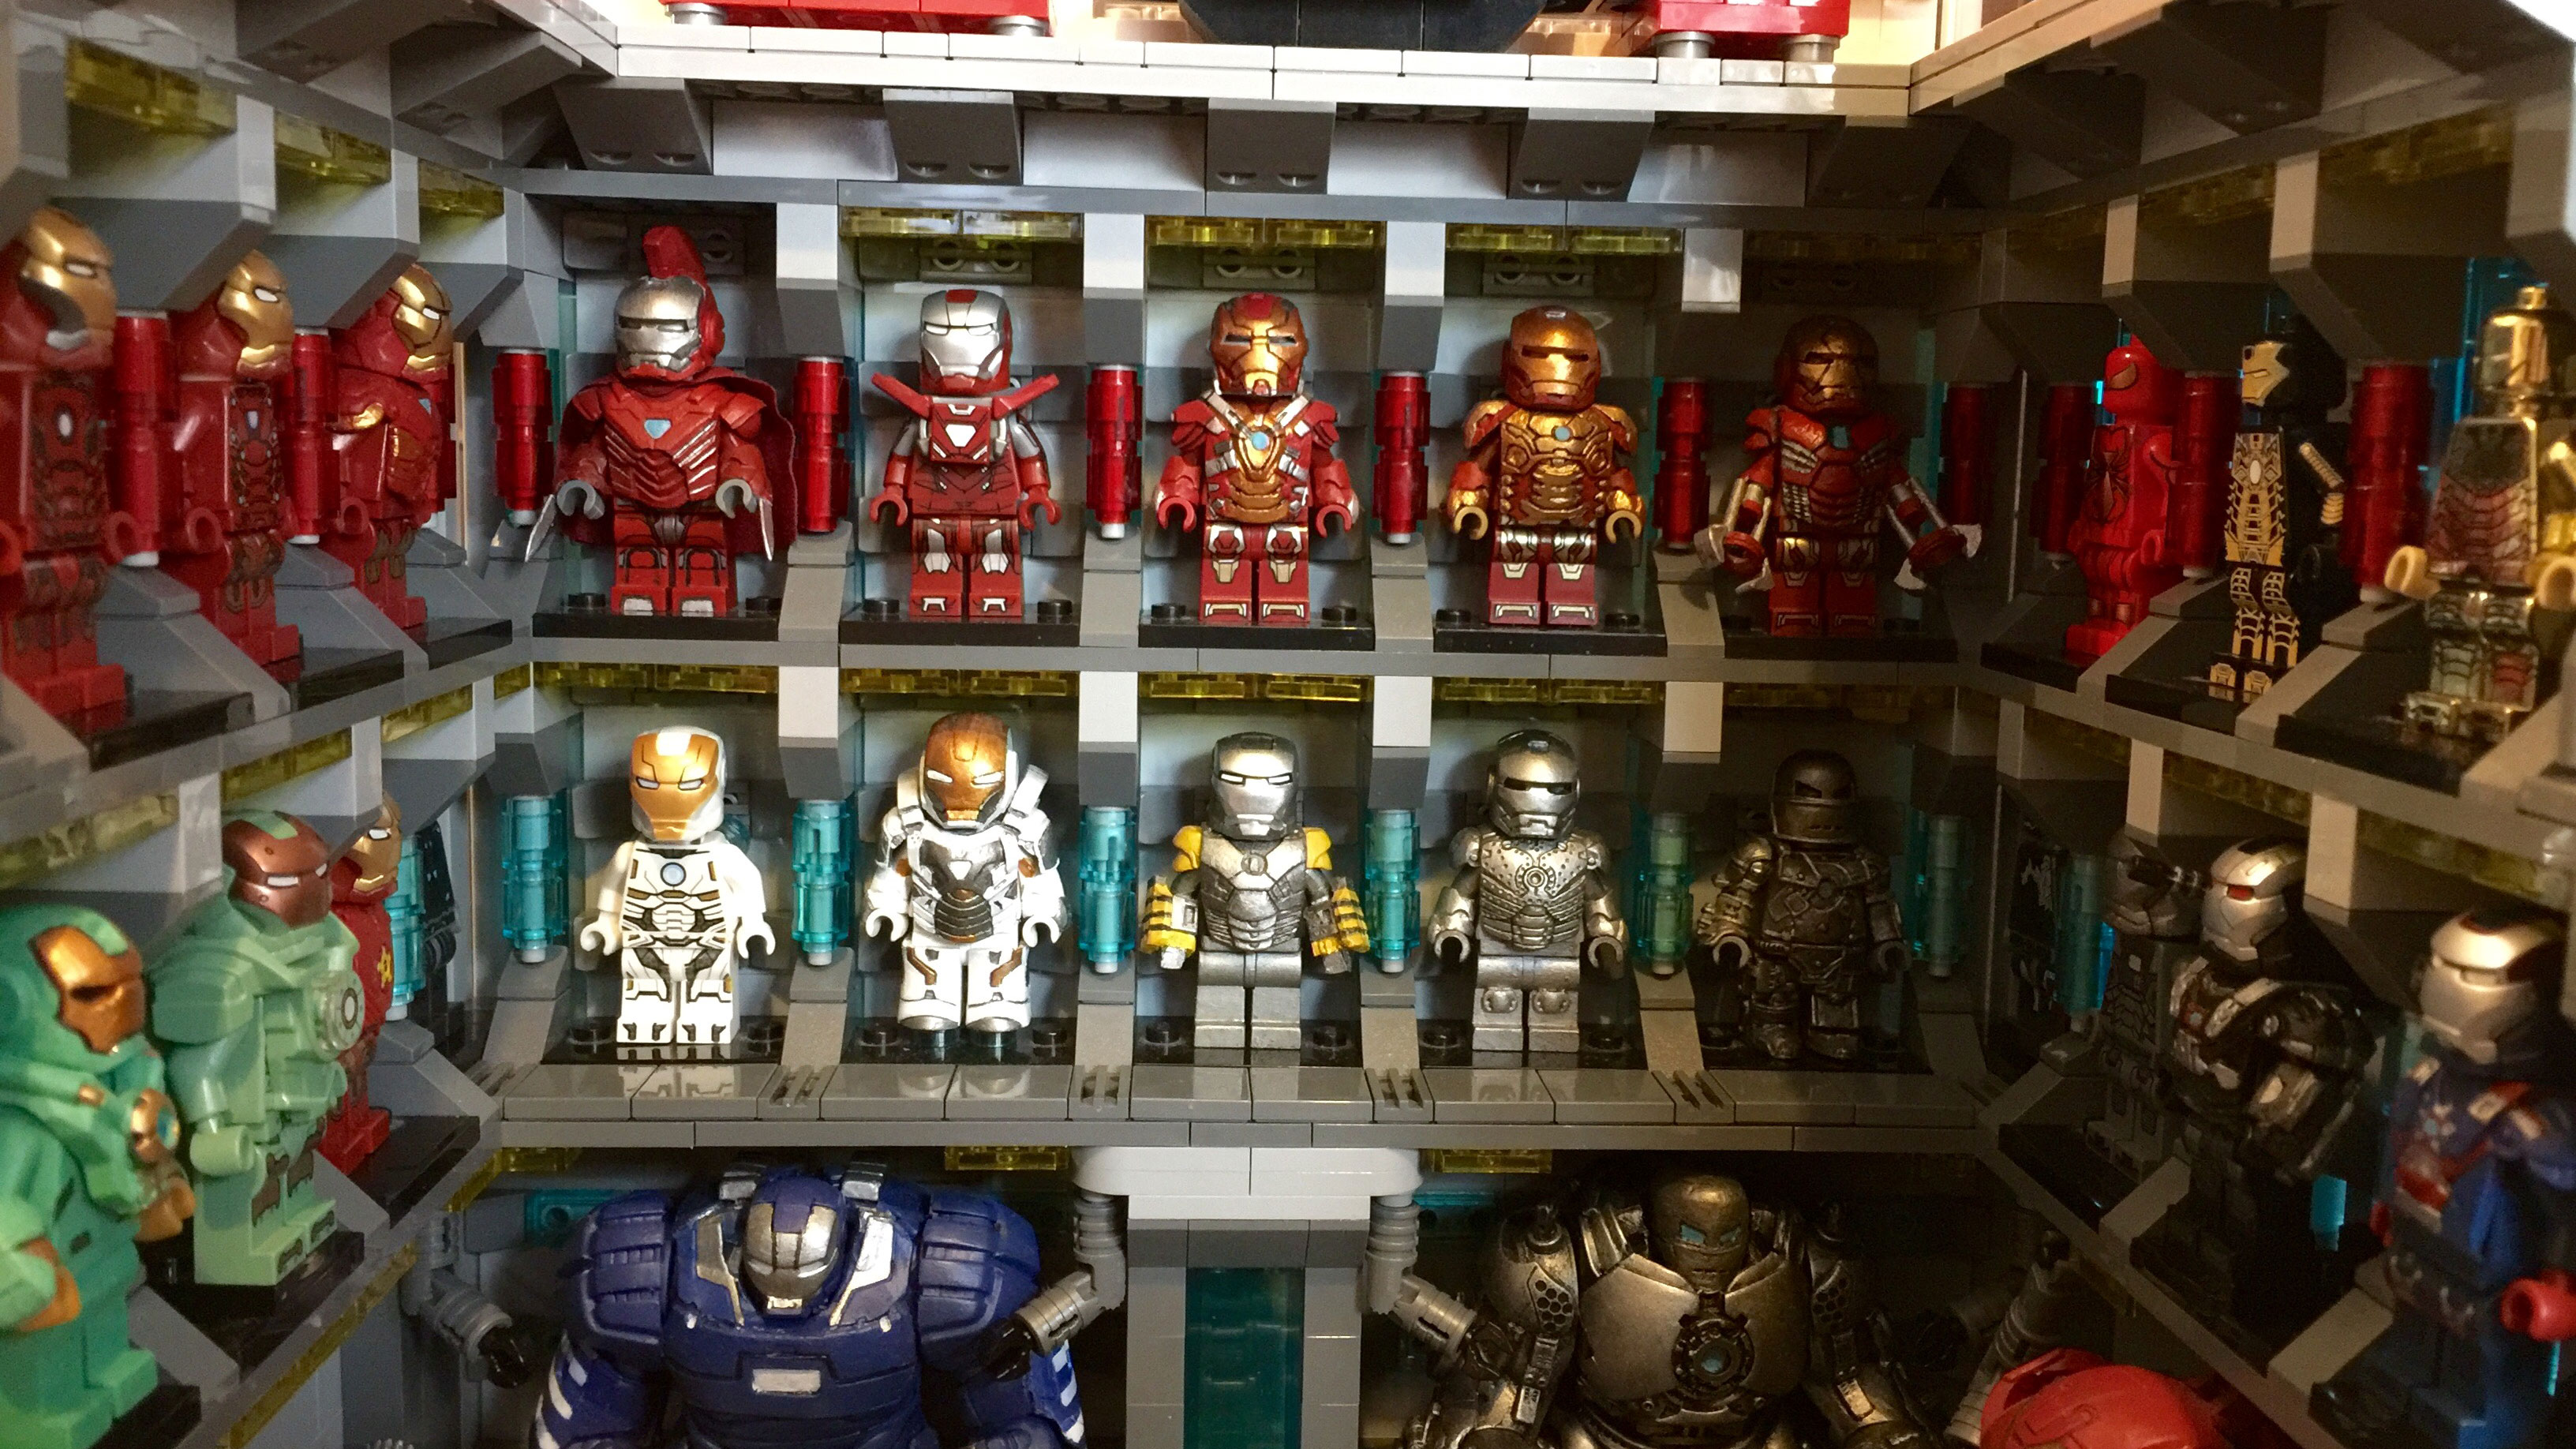 Lego versions of all the Iron Man suits would take so long ...  Lego